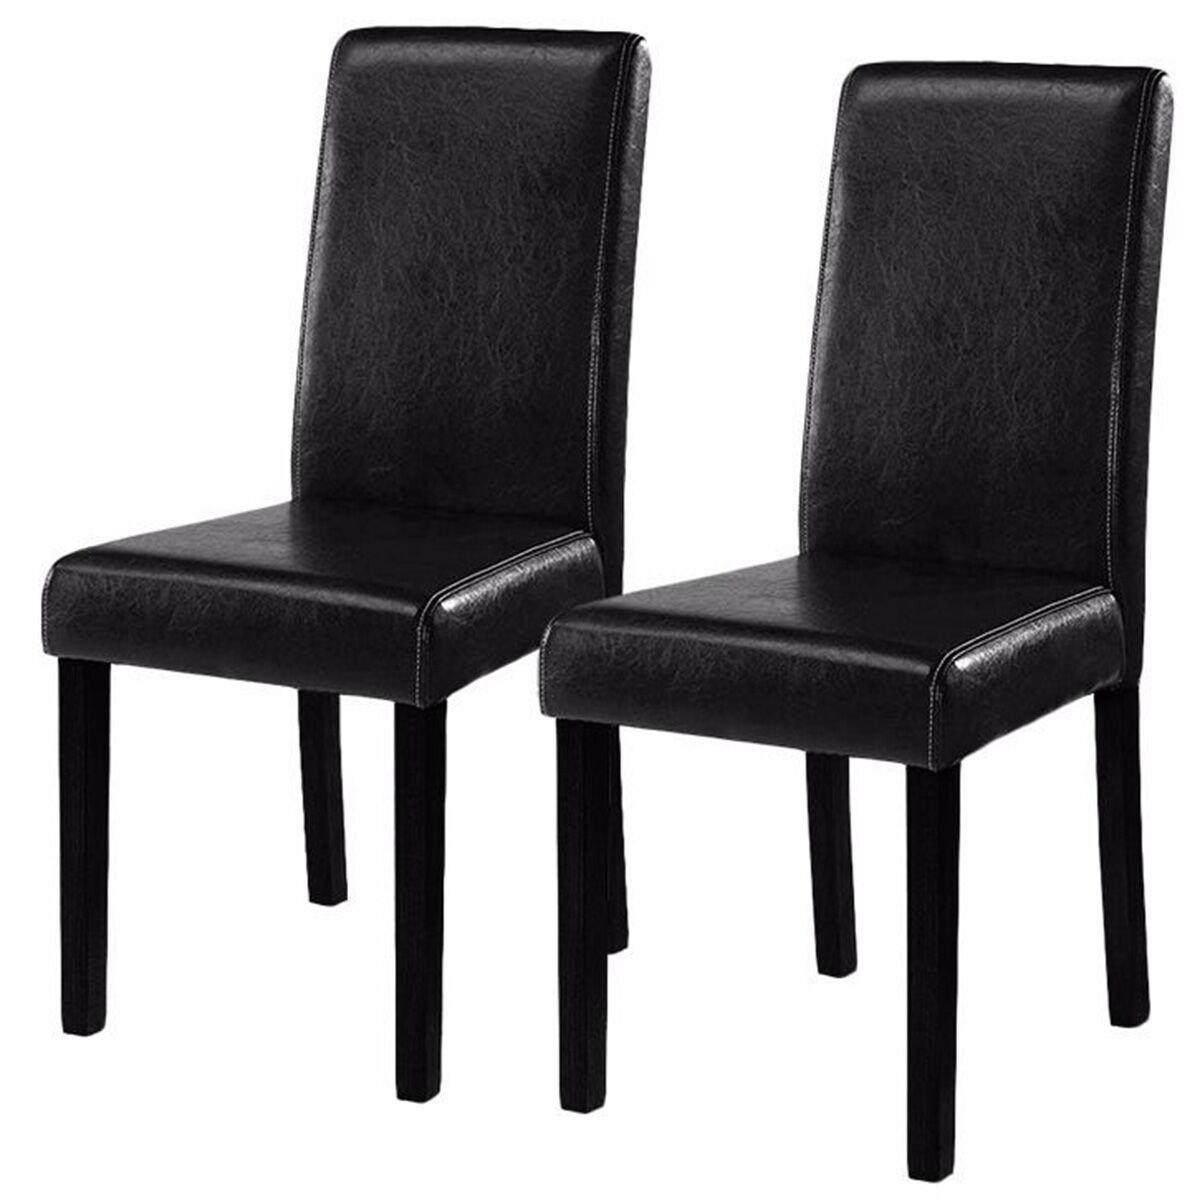 beautifulwoman Leather Black Room Elegant Dining Chairs Home Design Set of 2 Contemporary Durable